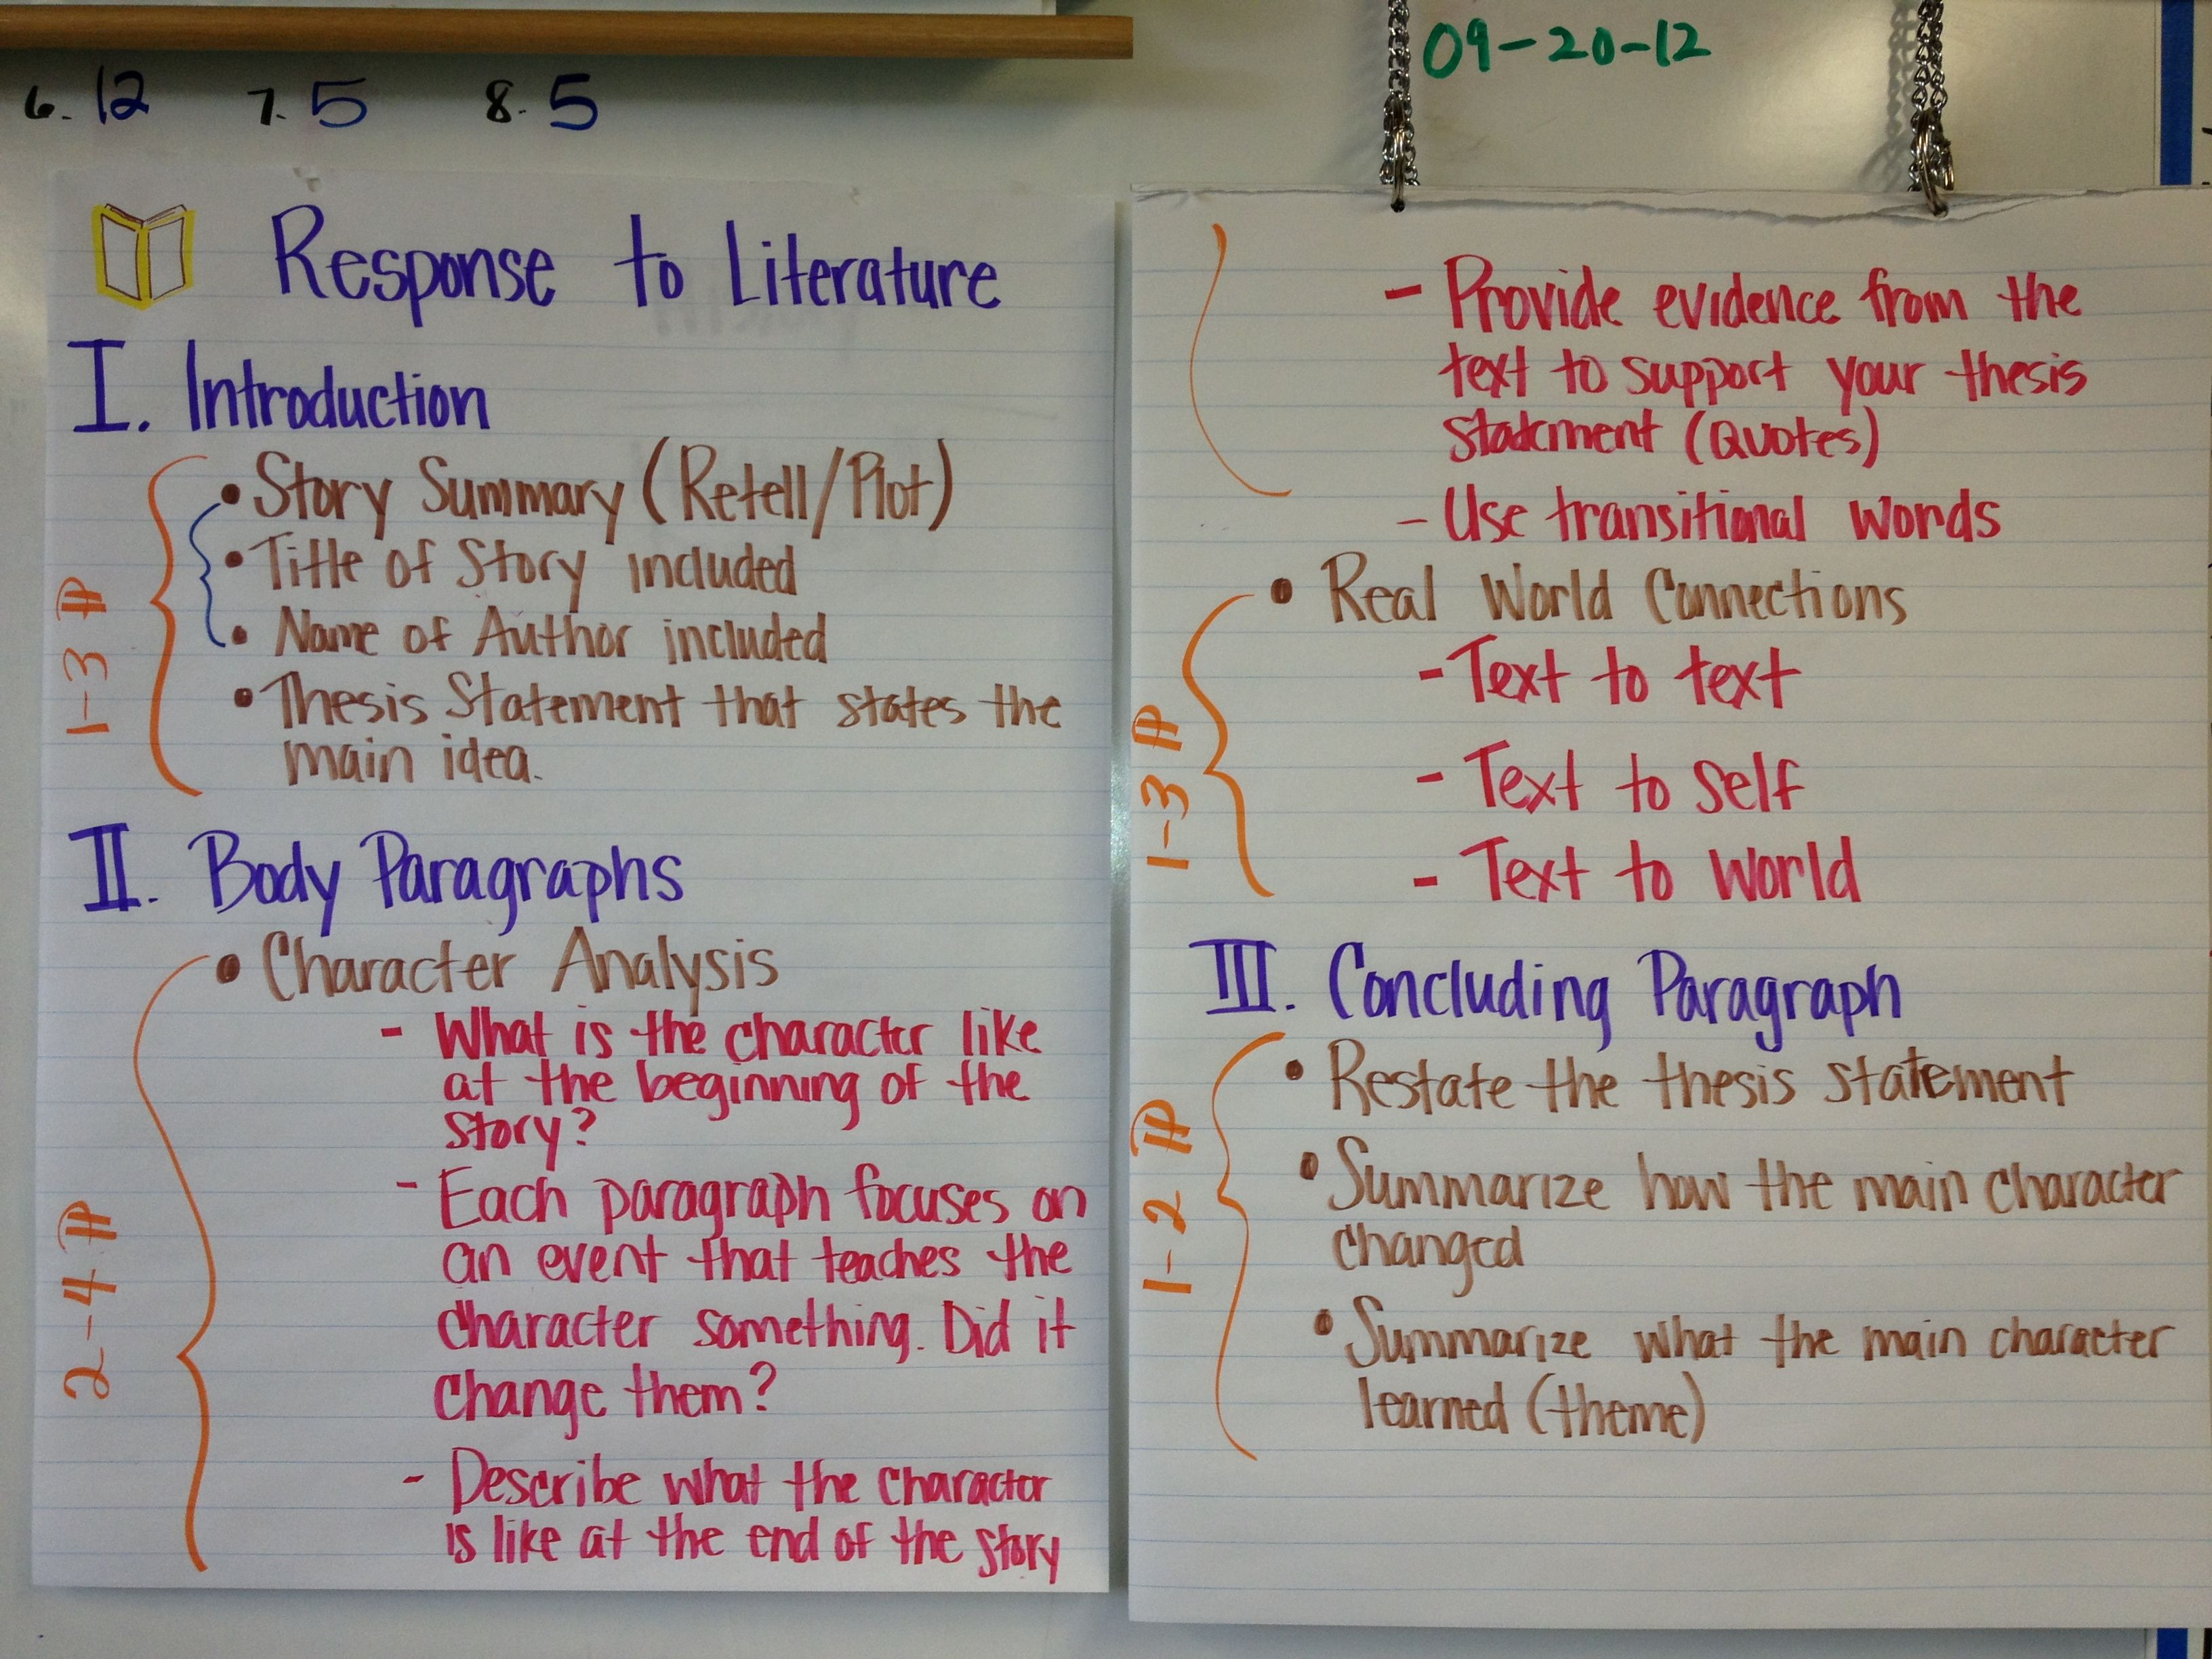 6th grade thesis statements Tweetemail tweetemailwriting a thesis statement writing a thesis statement can be an extremely difficult skill for students to learn the teaching standards this skill is introduced in the tennessee state teaching standards beginning at the sixth grade level.